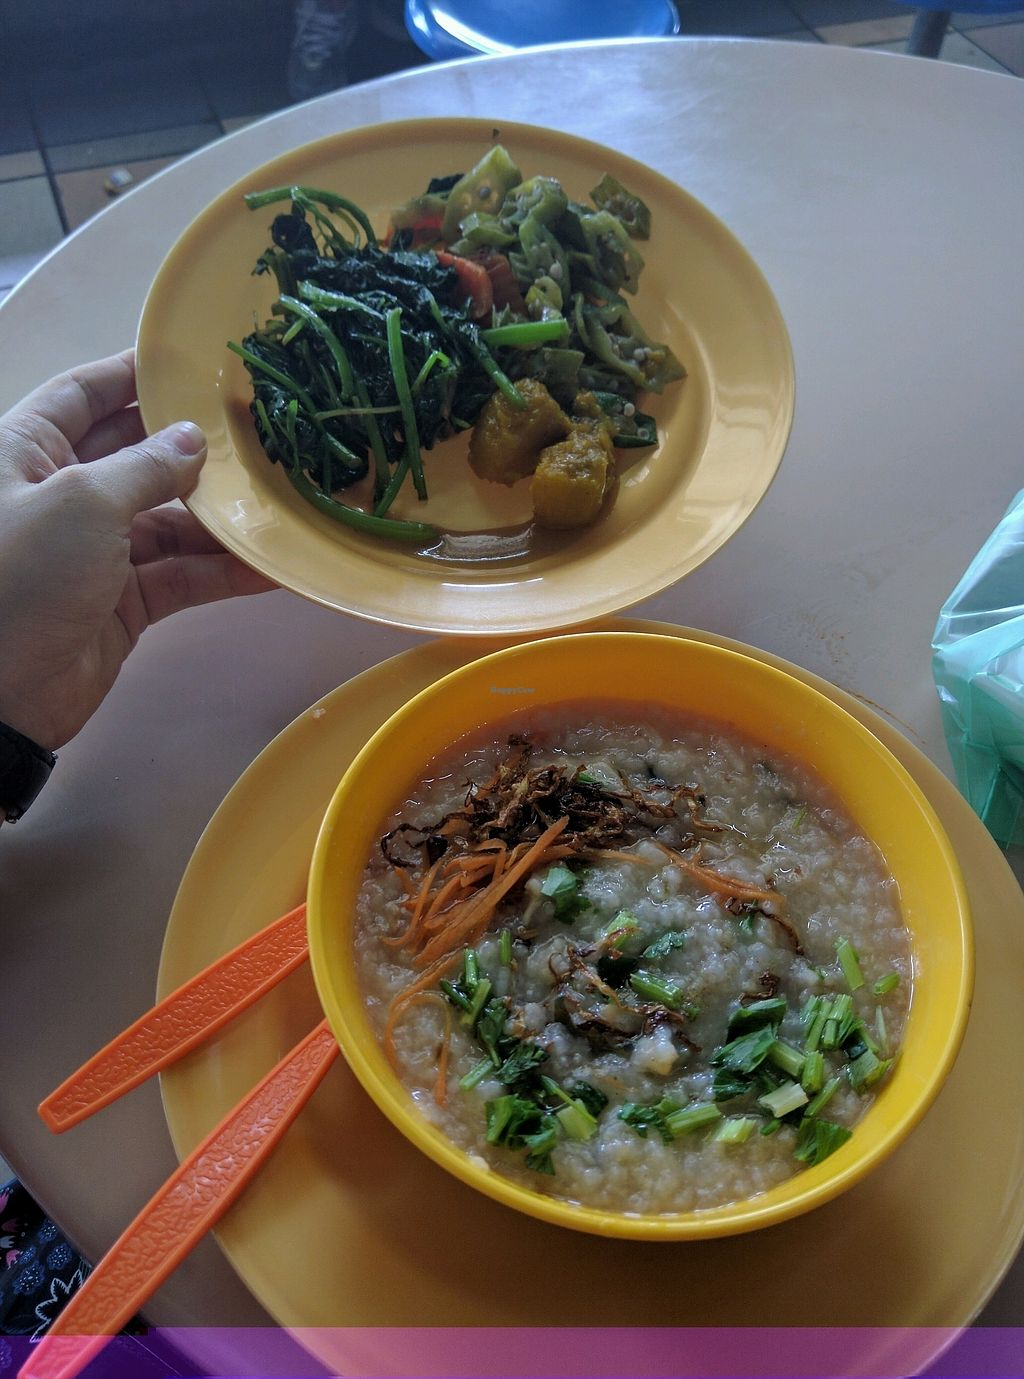 """Photo of Kompleks Sri Selera Bayan Baru - Vegetarian Stall  by <a href=""""/members/profile/Summer_Tan"""">Summer_Tan</a> <br/>Porridge (Monday's Special) and a plate with some dishes from the economy rice buffet (pumpkin, okra etc.) A good Hokkien style porridge, that is vegetarian! Rare find, and very tasty! <br/> February 2, 2018  - <a href='/contact/abuse/image/65929/354157'>Report</a>"""